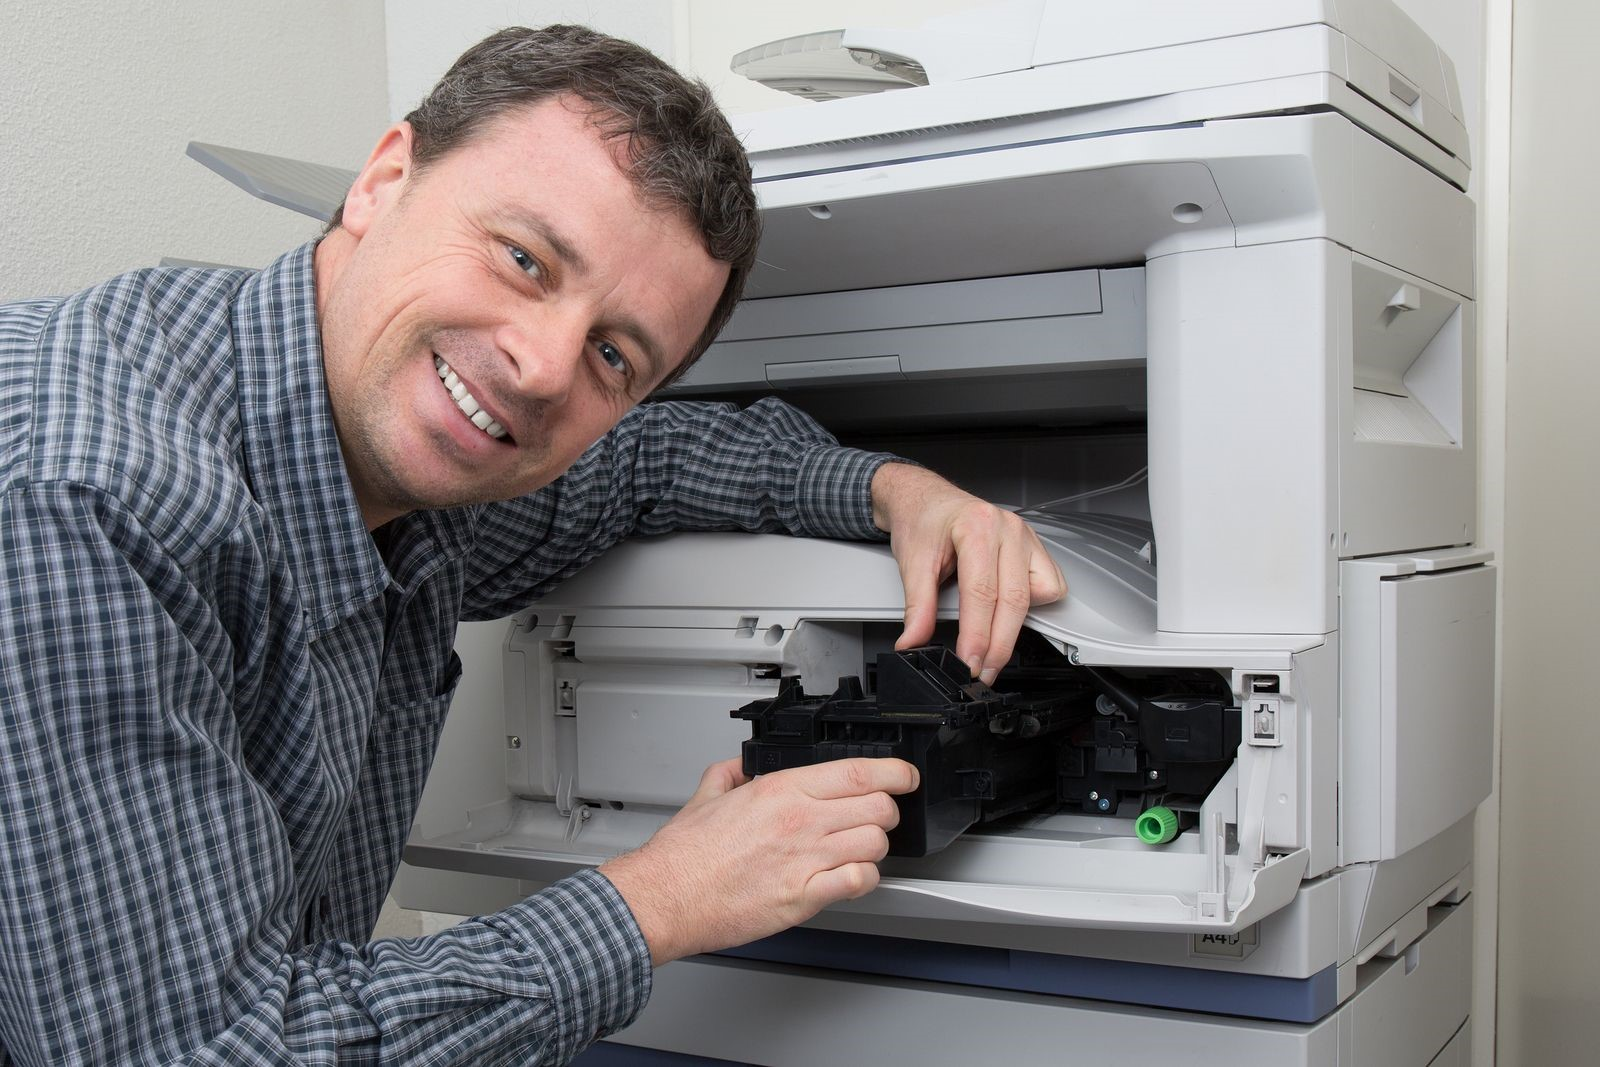 Office Equipment Service Shares Useful Tips for Maintaining Printers